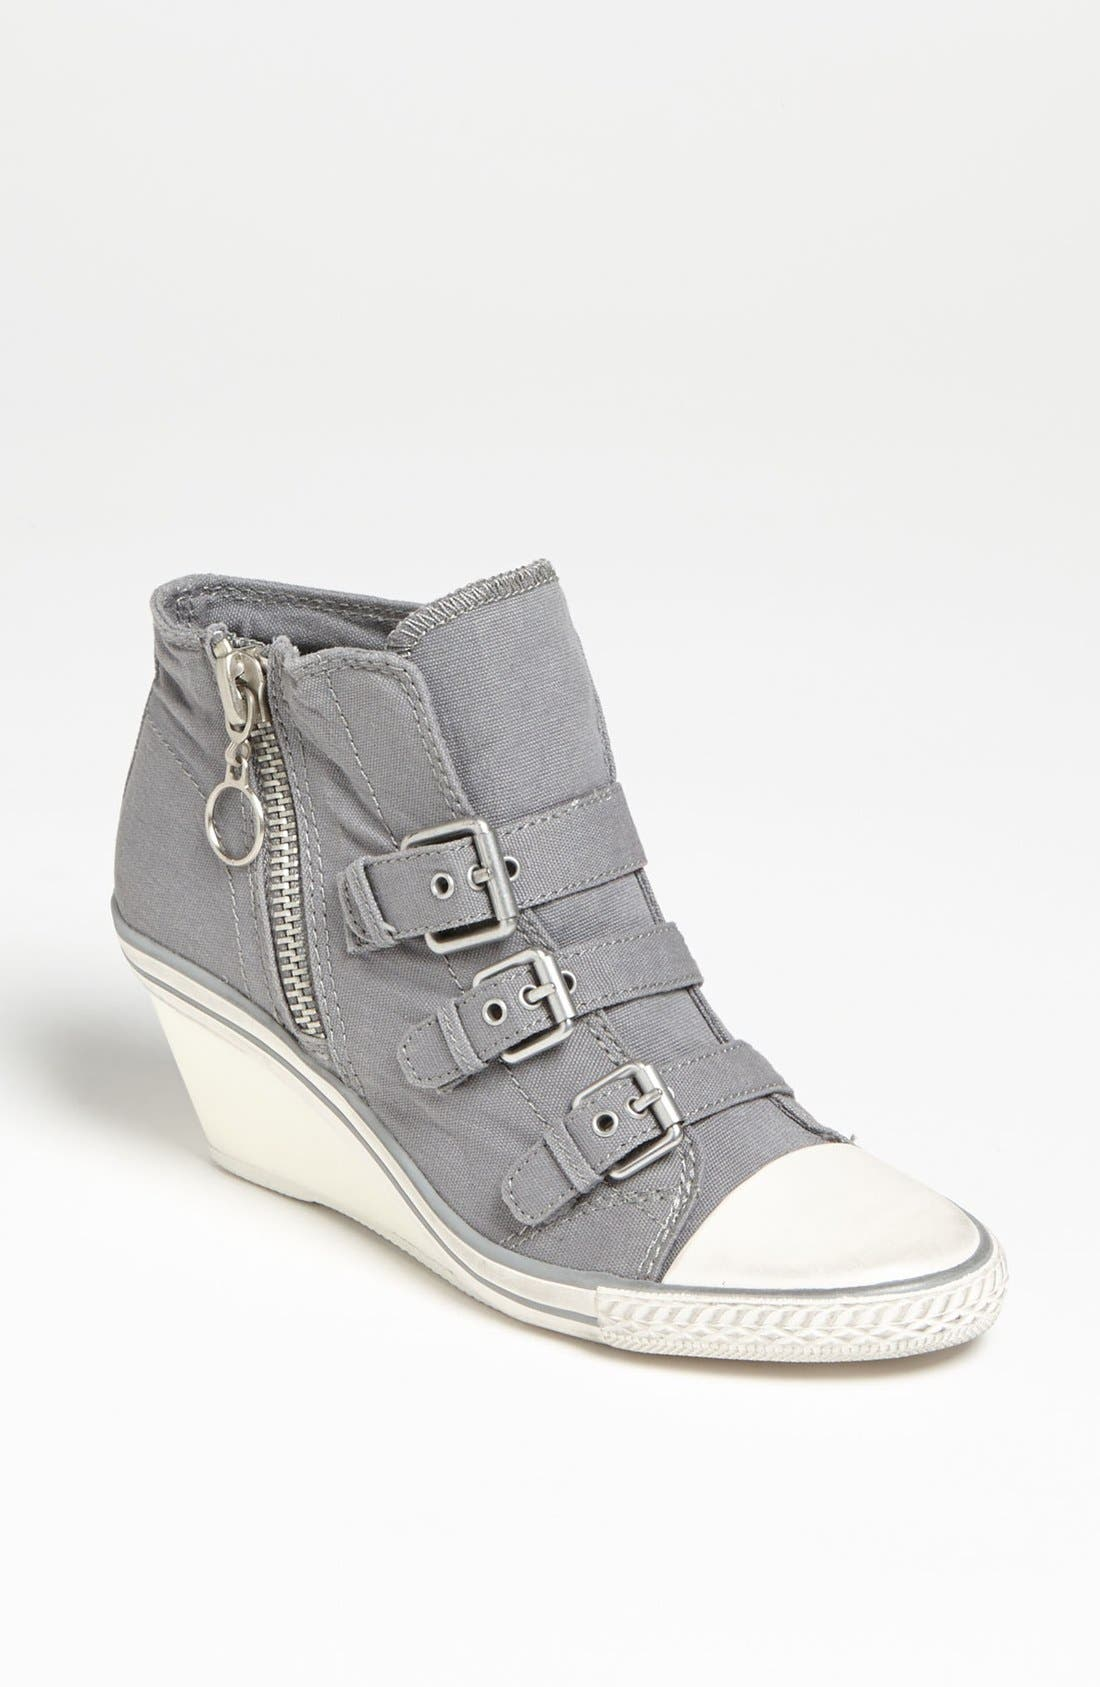 Alternate Image 1 Selected - Ash 'Gin' Bootie